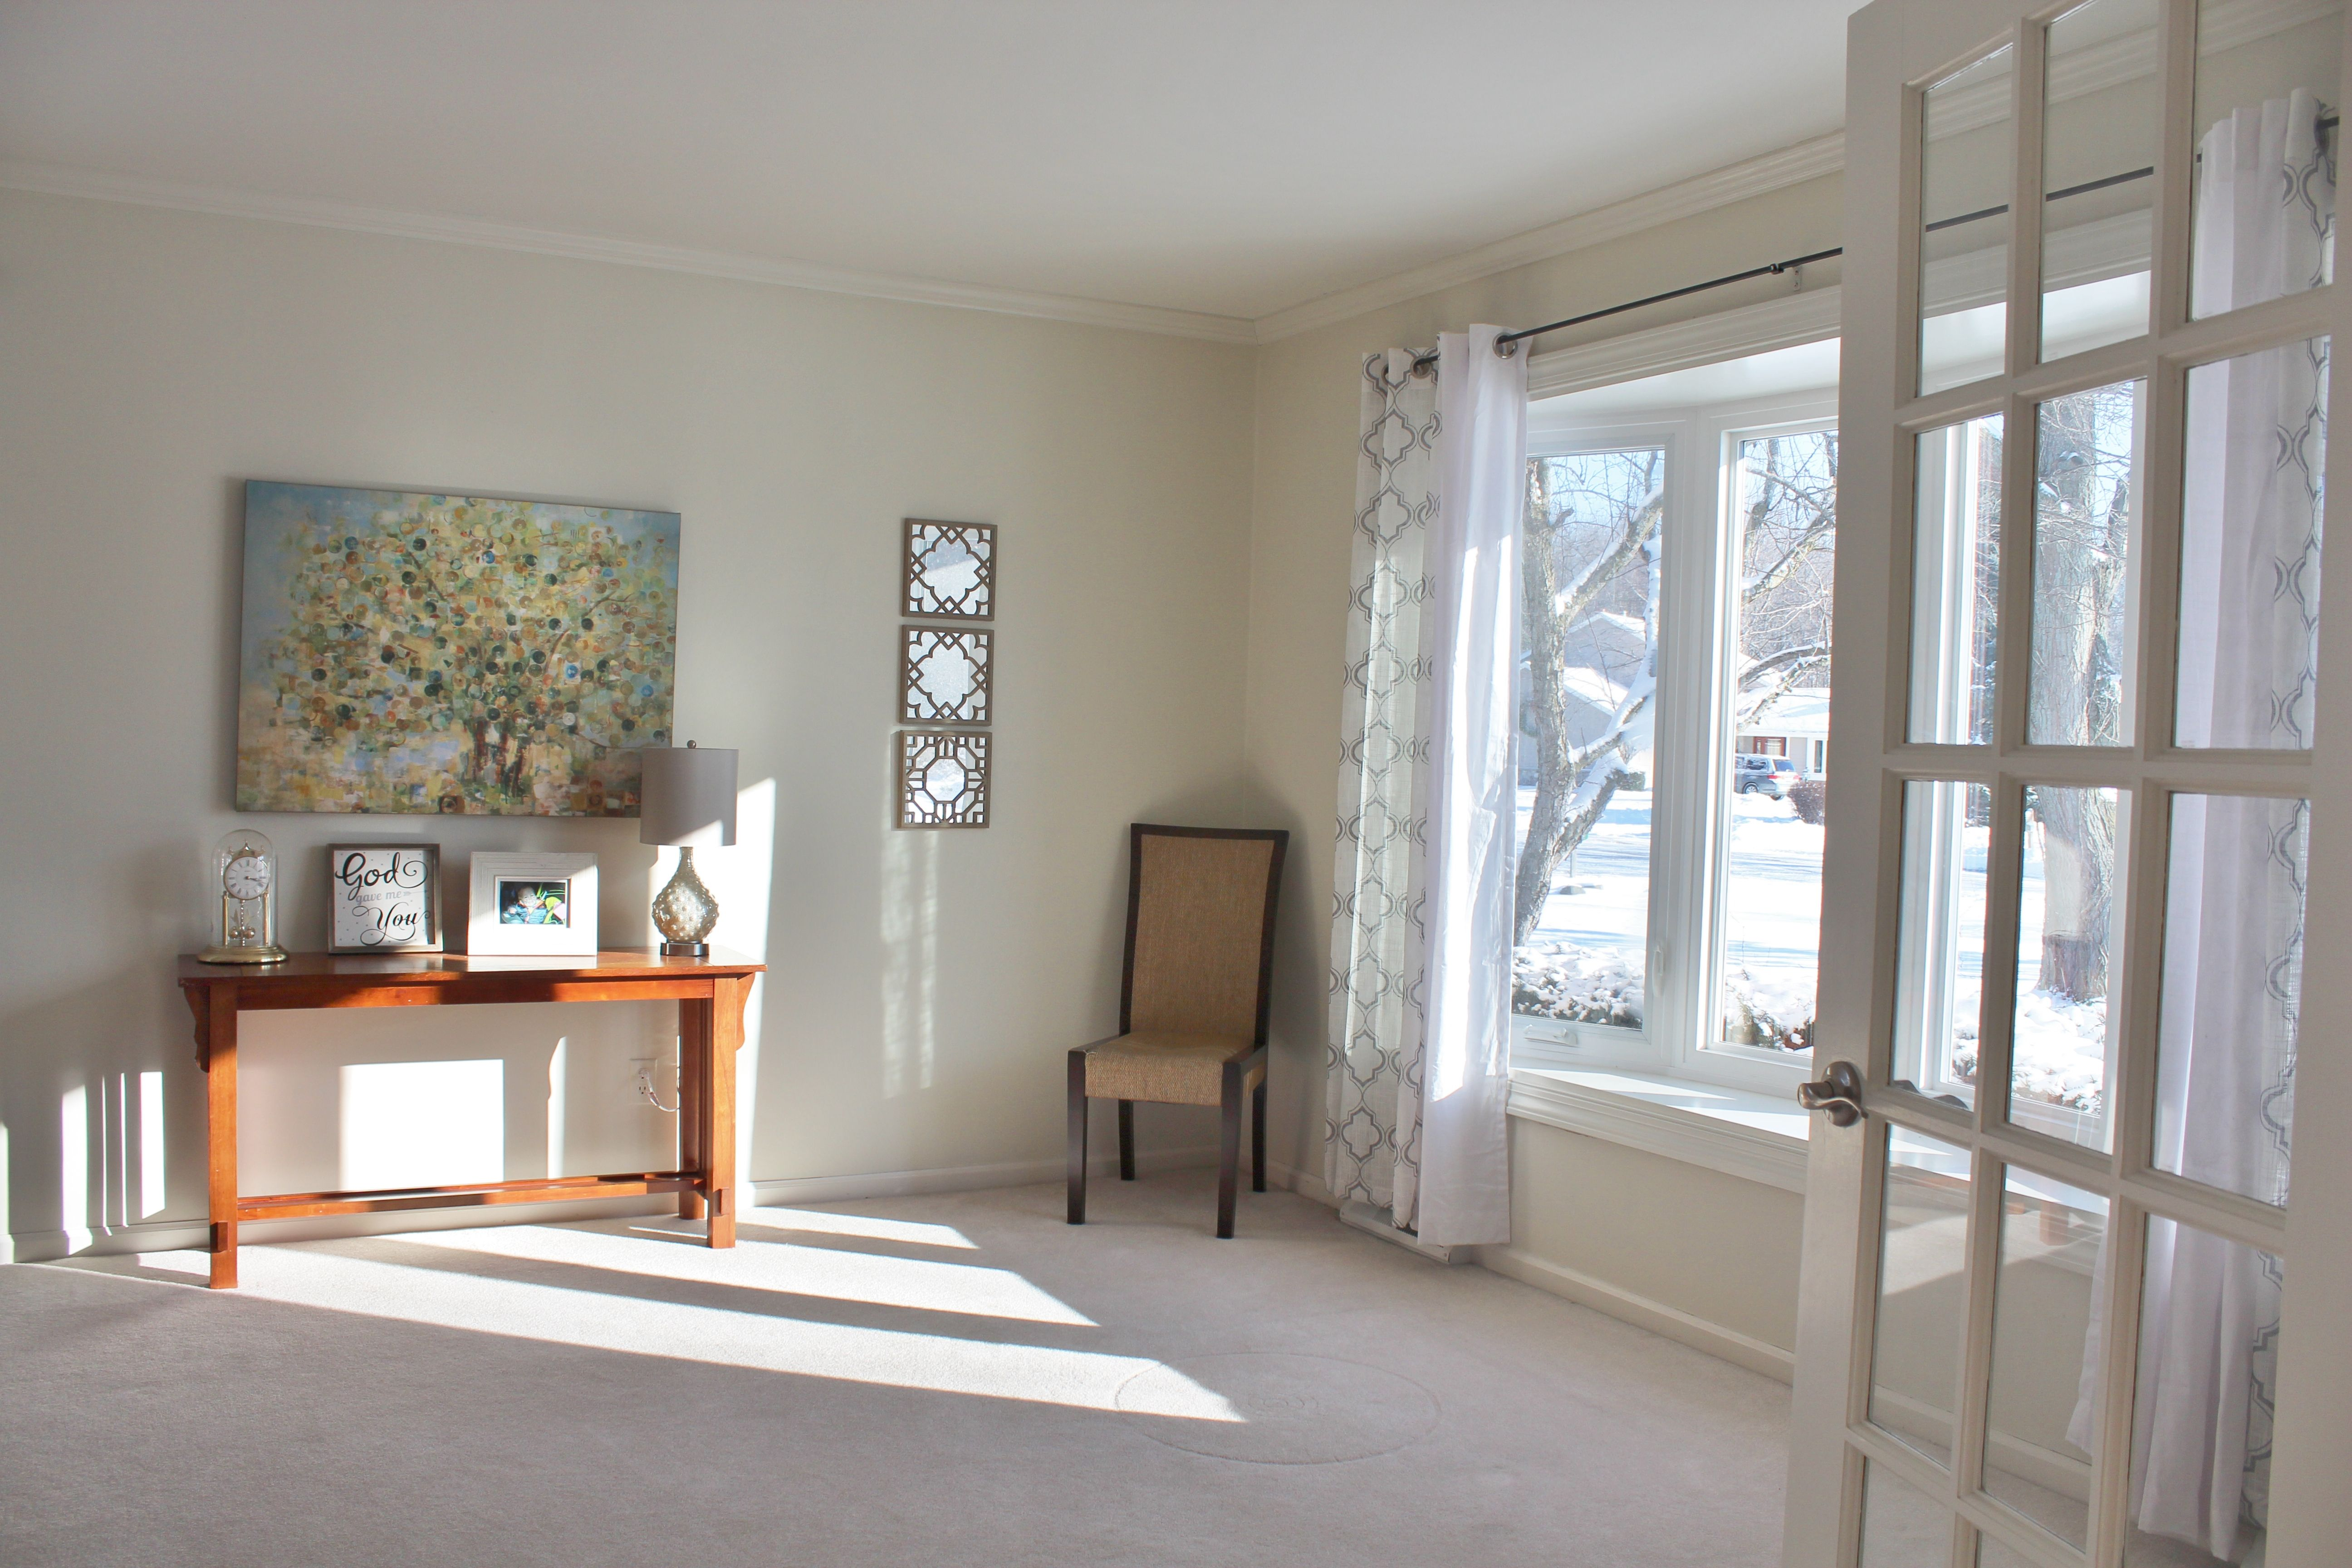 Paint For Living Room Walls Living Room After Paint Farrow Ball Clunch Wall Farrow